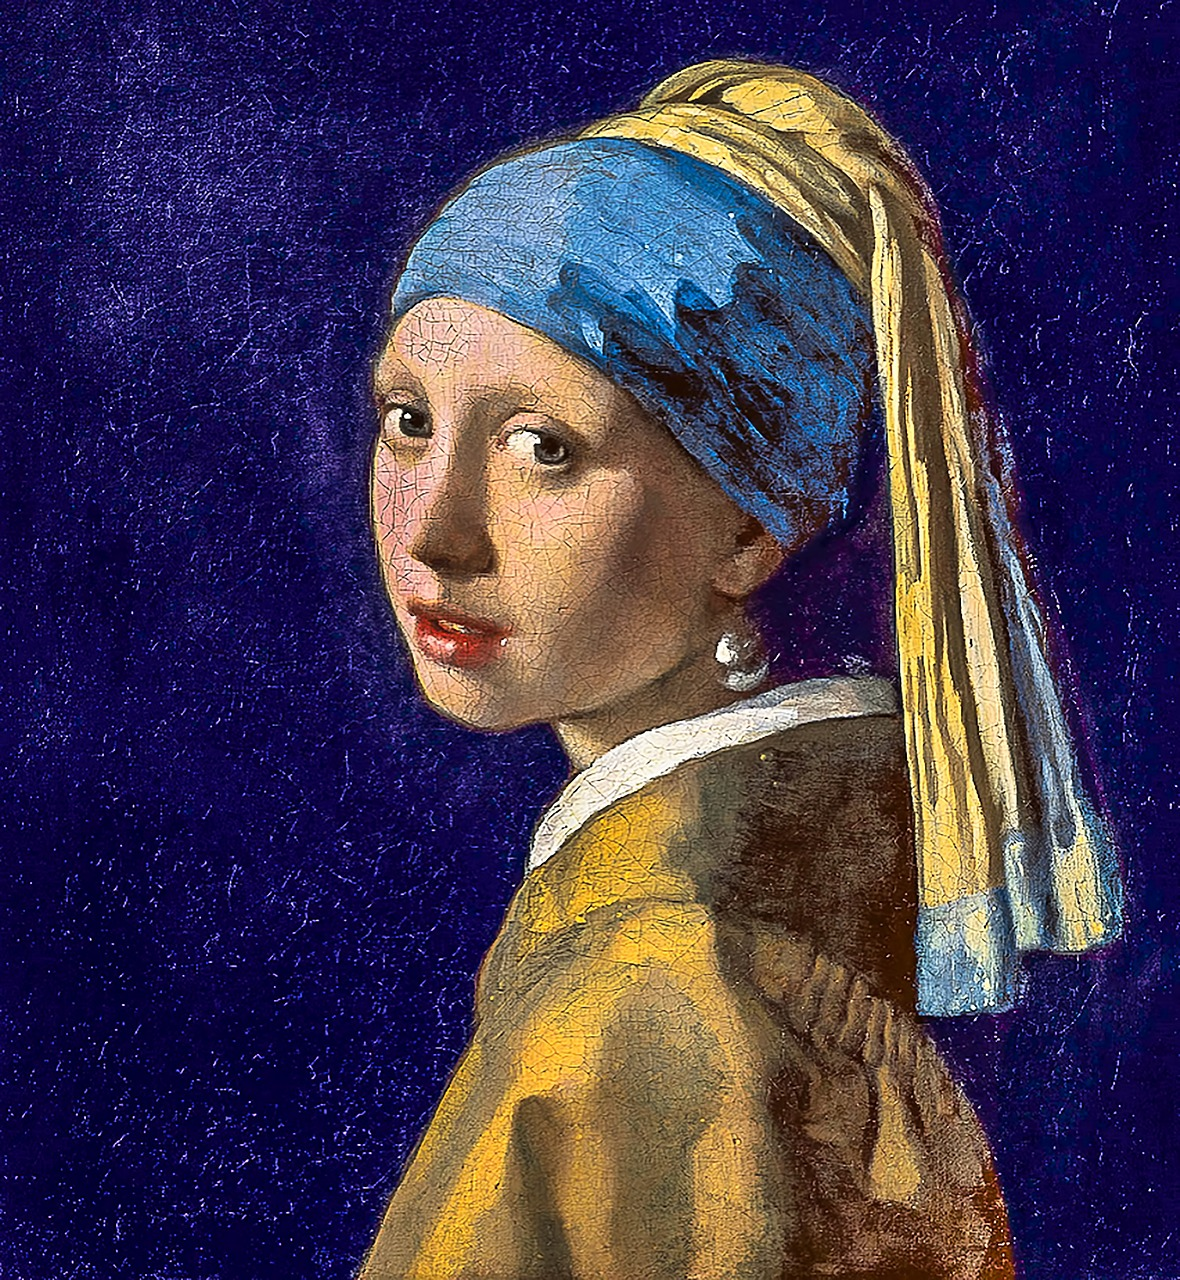 Source: Copy of  Girl with the Pearl Earring  painting by  Robert Waghorn  on  Pixabay